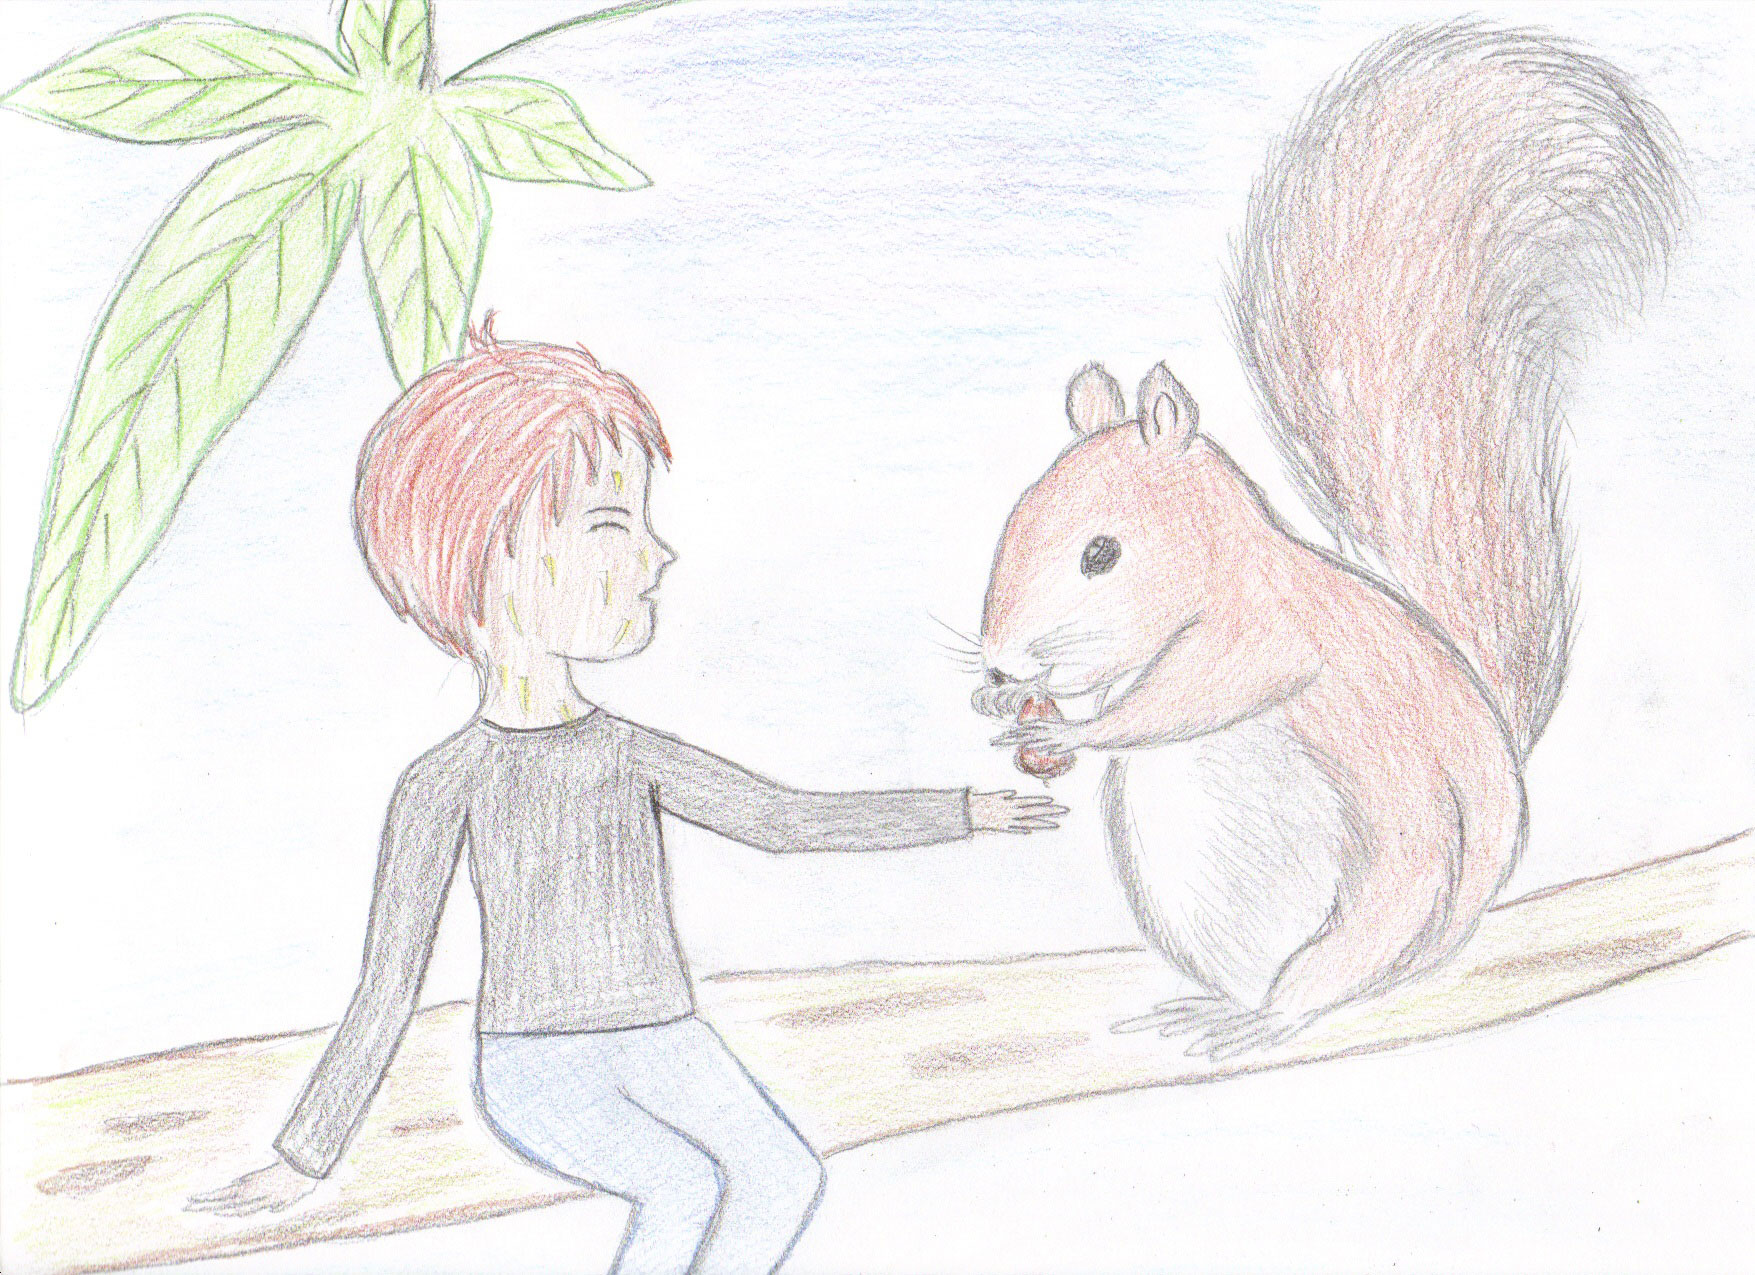 Aesculus and a Squirrel